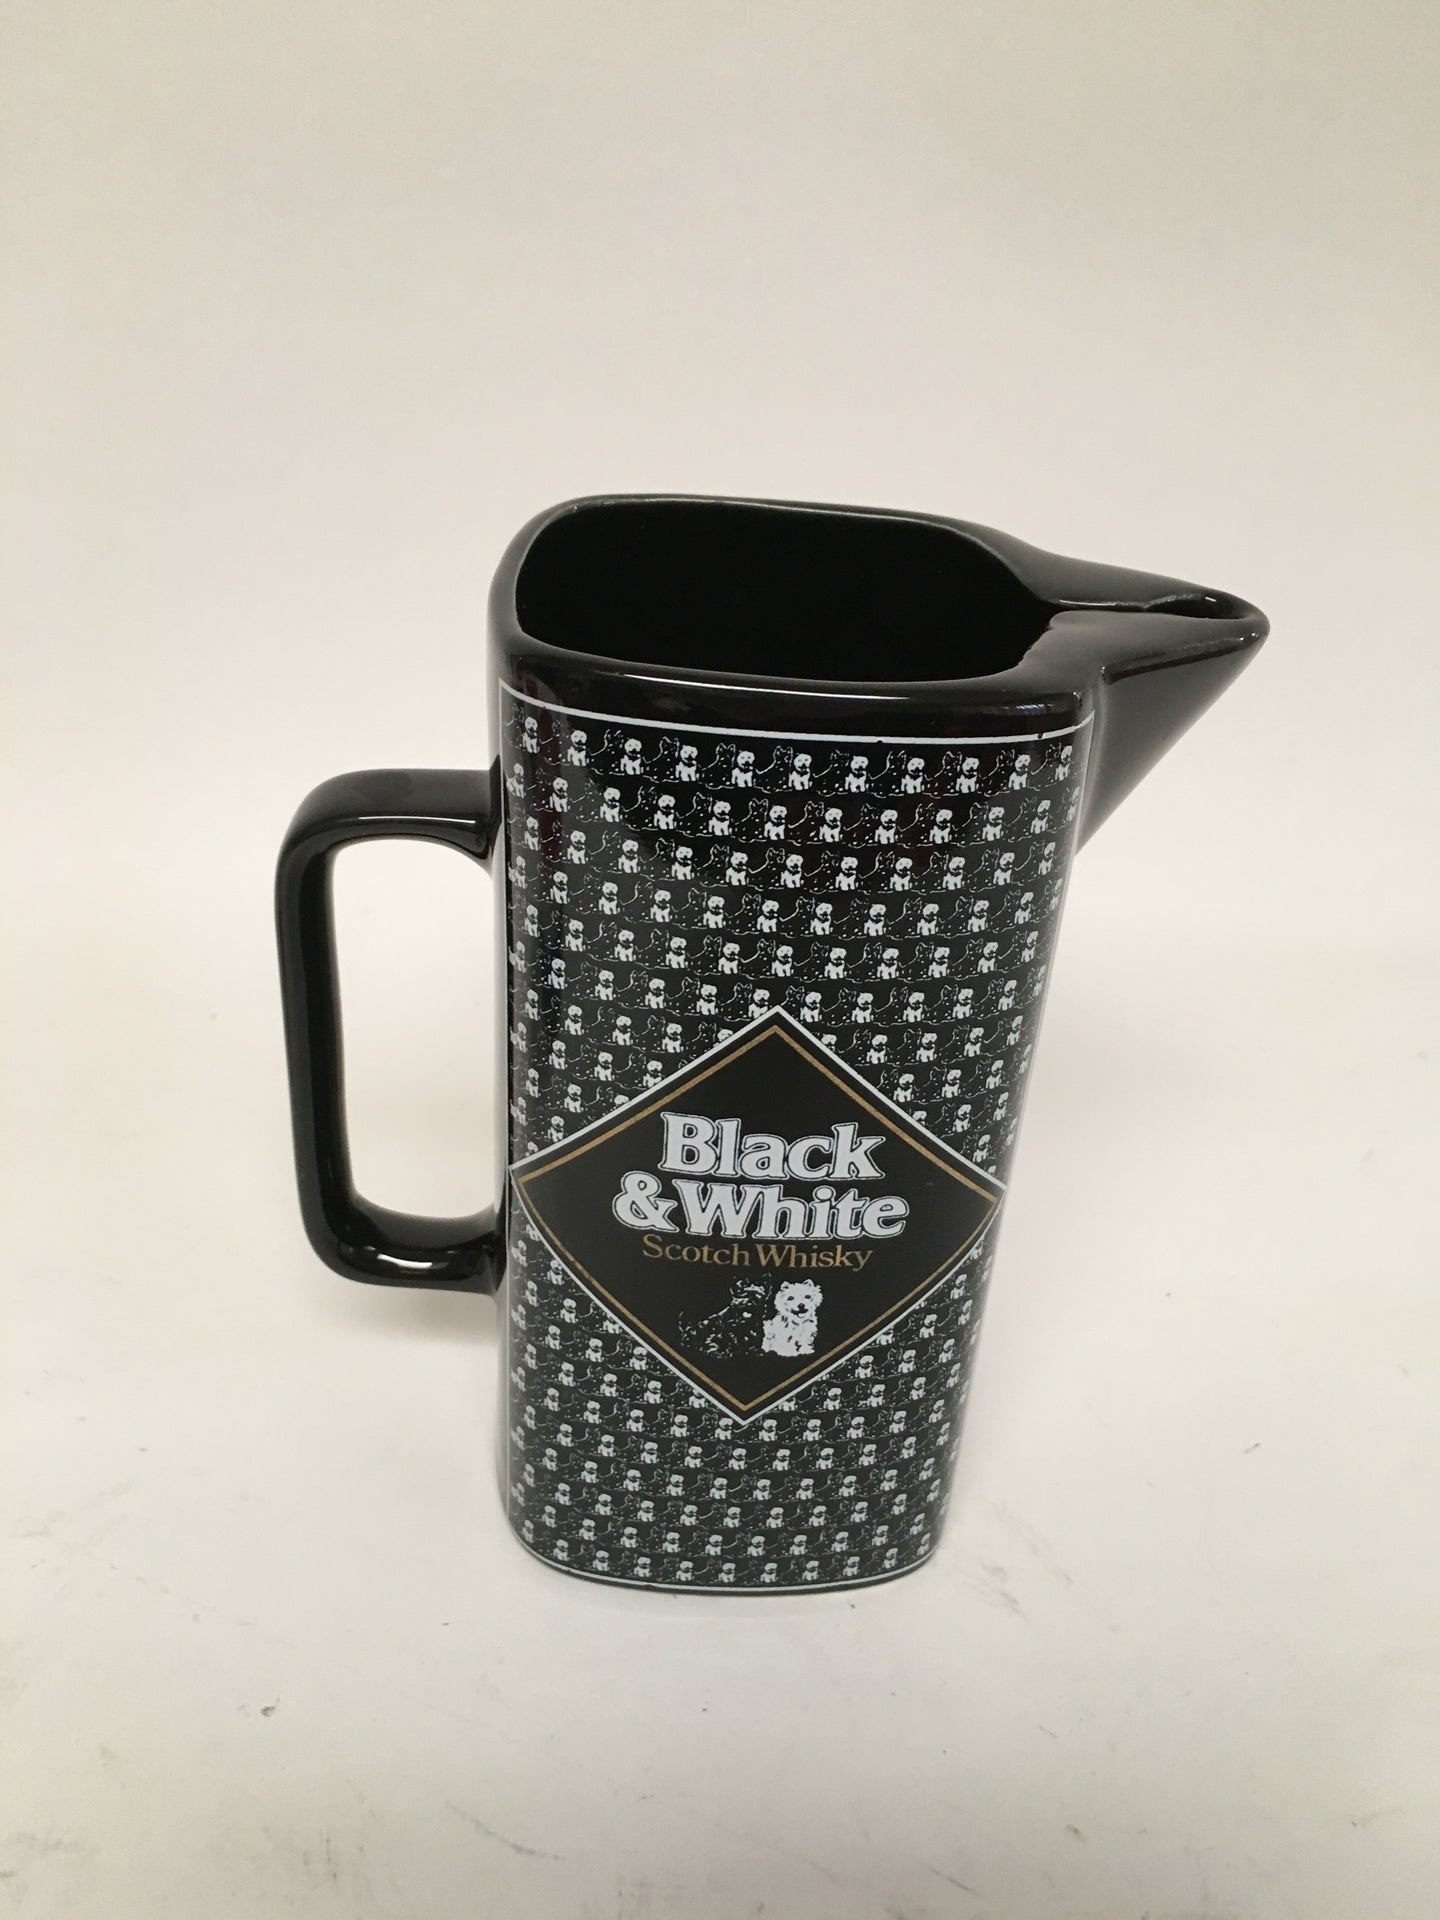 Vintage Black and White Scotch Whisky Pitcher